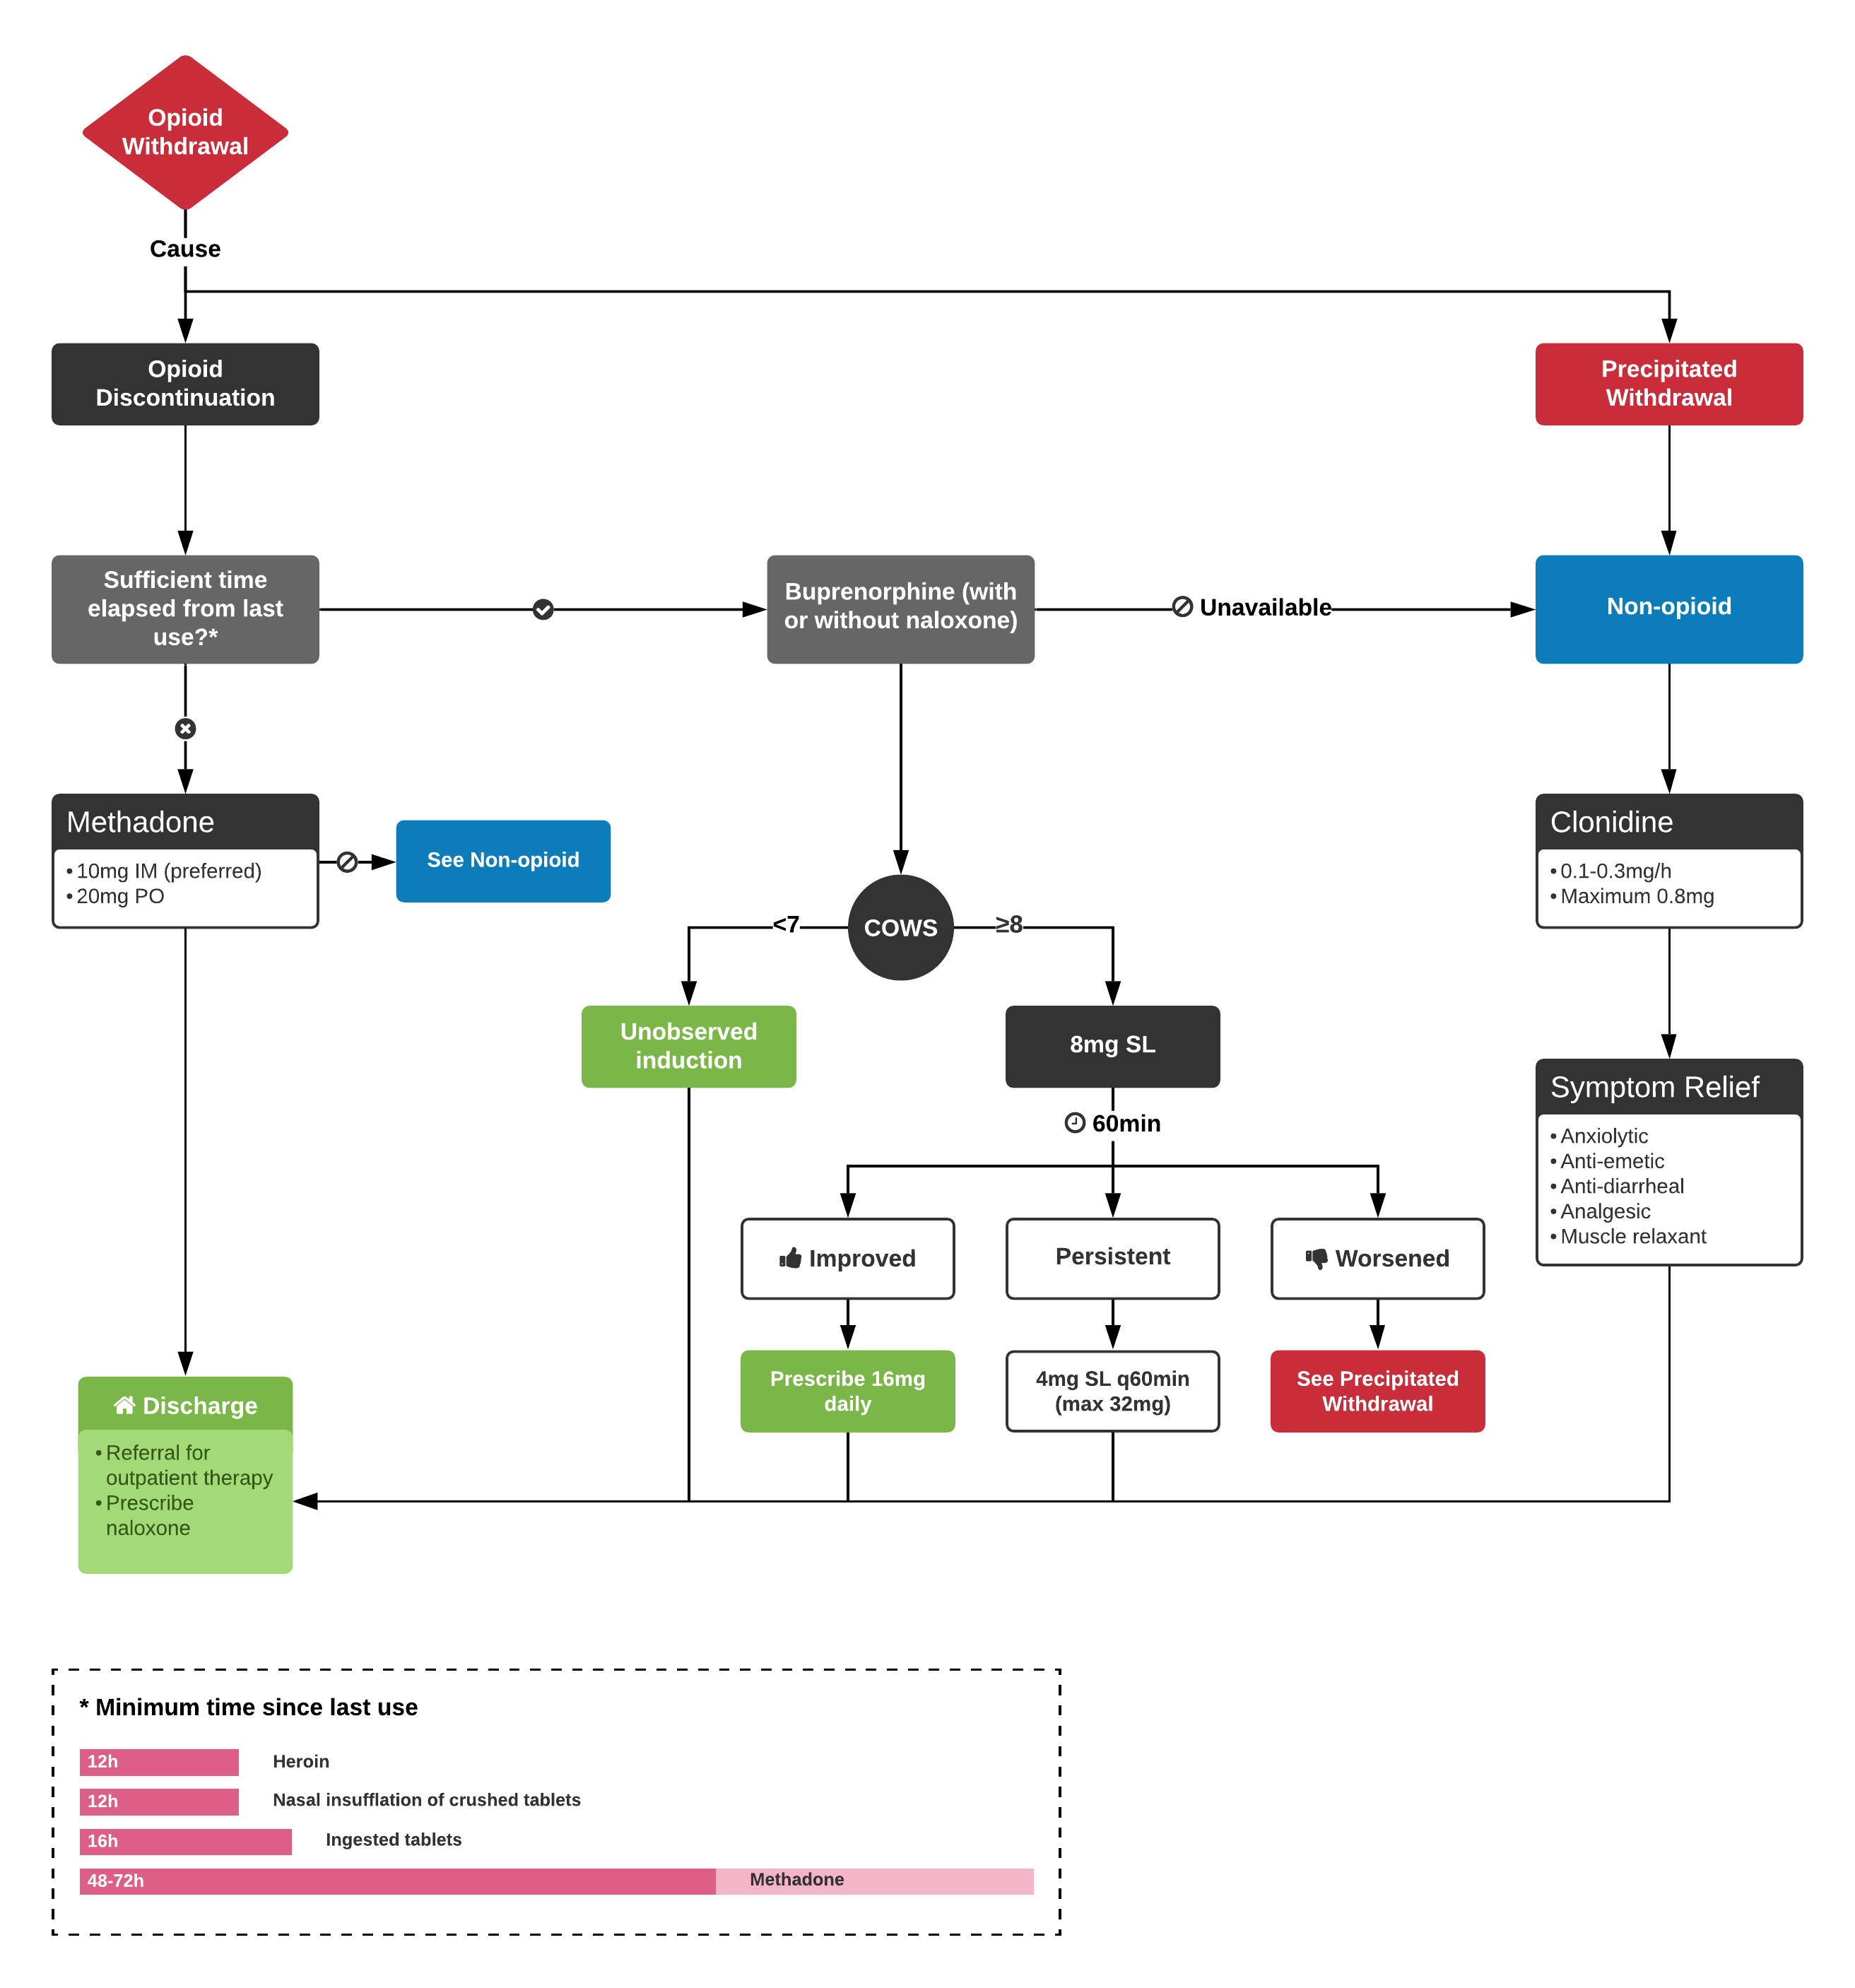 An Algorithm for the Management of Opioid Withdrawal